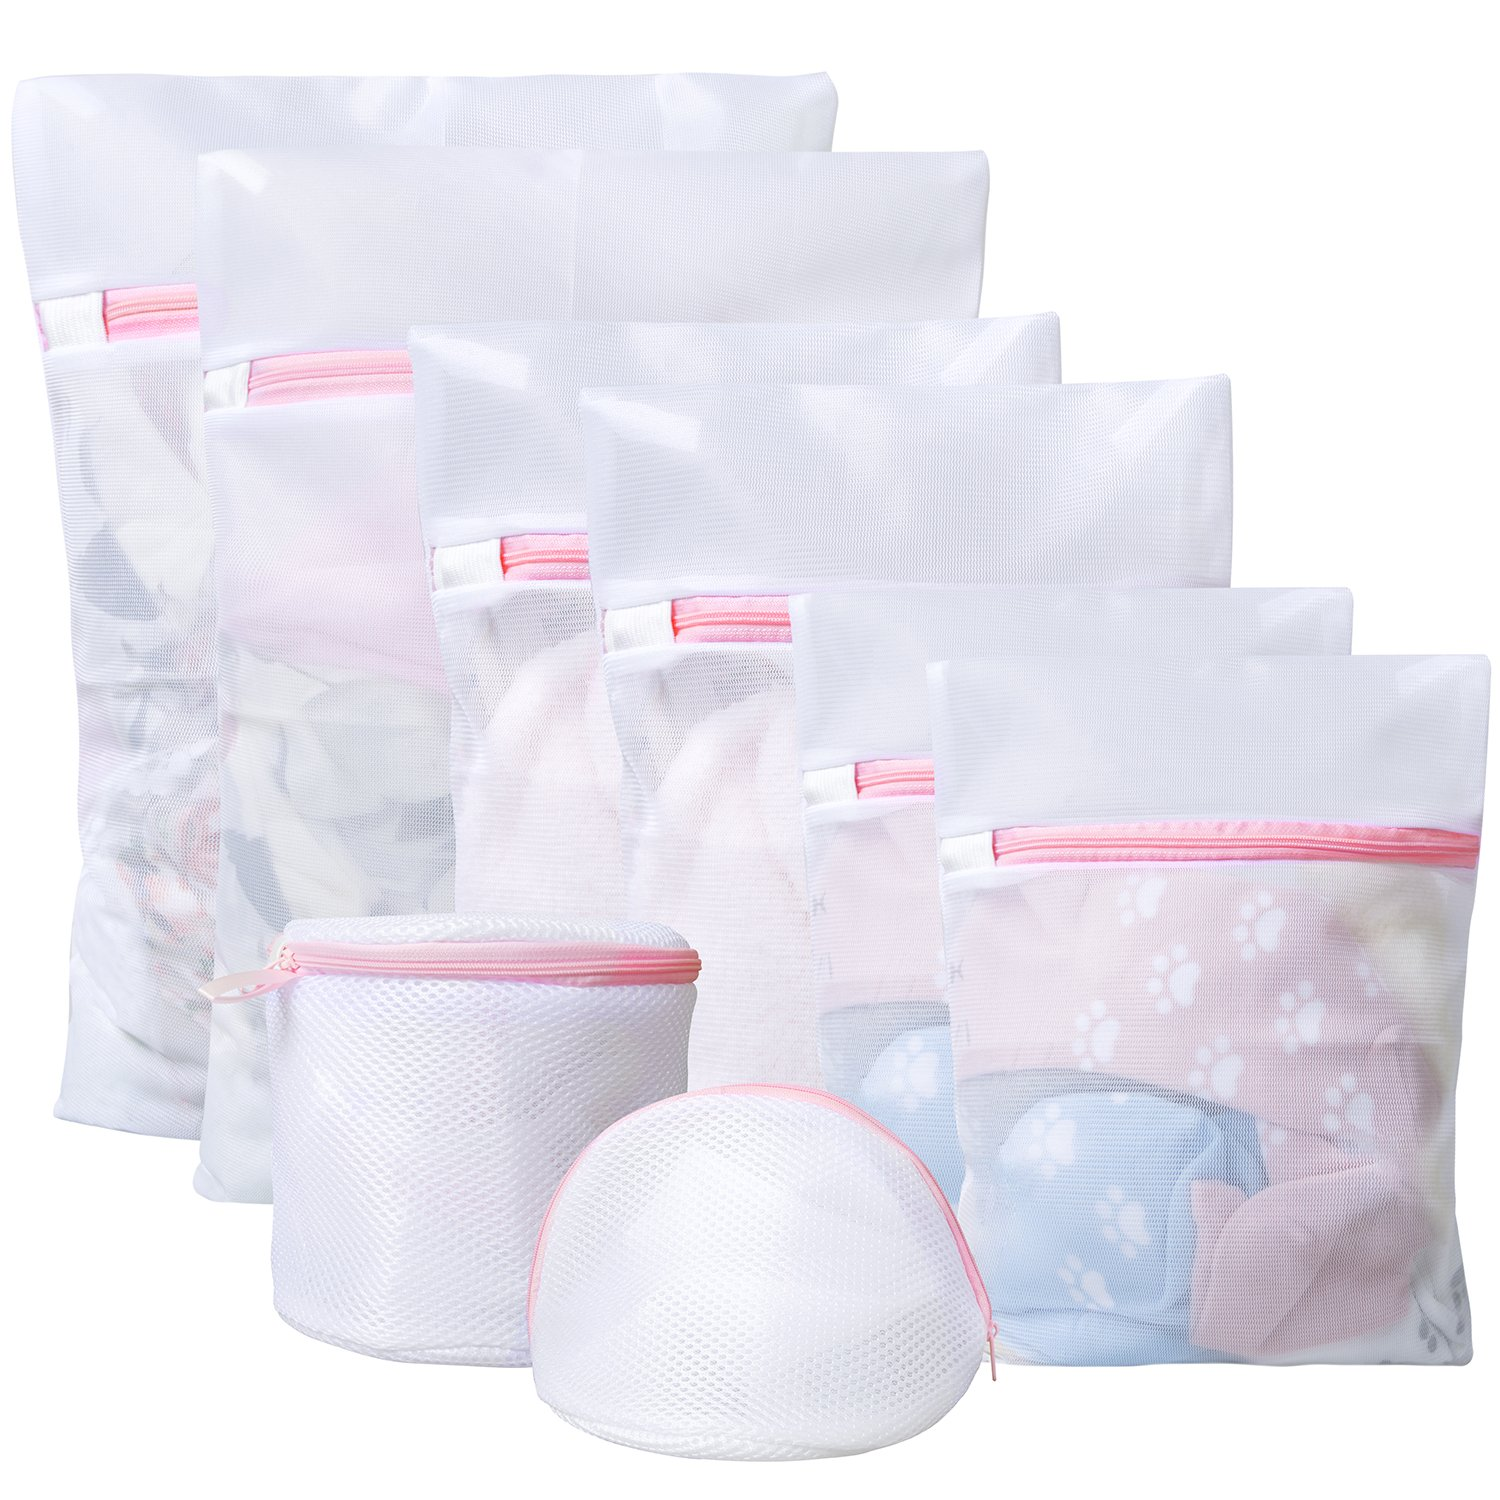 Stocking Lingerie Bag for Bra Besteek 8 Pcs Mesh Laundry Bags for Delicates Blouse Clothing Washing Bags Laundry 1 Extra Large, 1 Large, 1 Medium, 1 Small, 2 Extra Small, 2 Bra//Underwear Bag